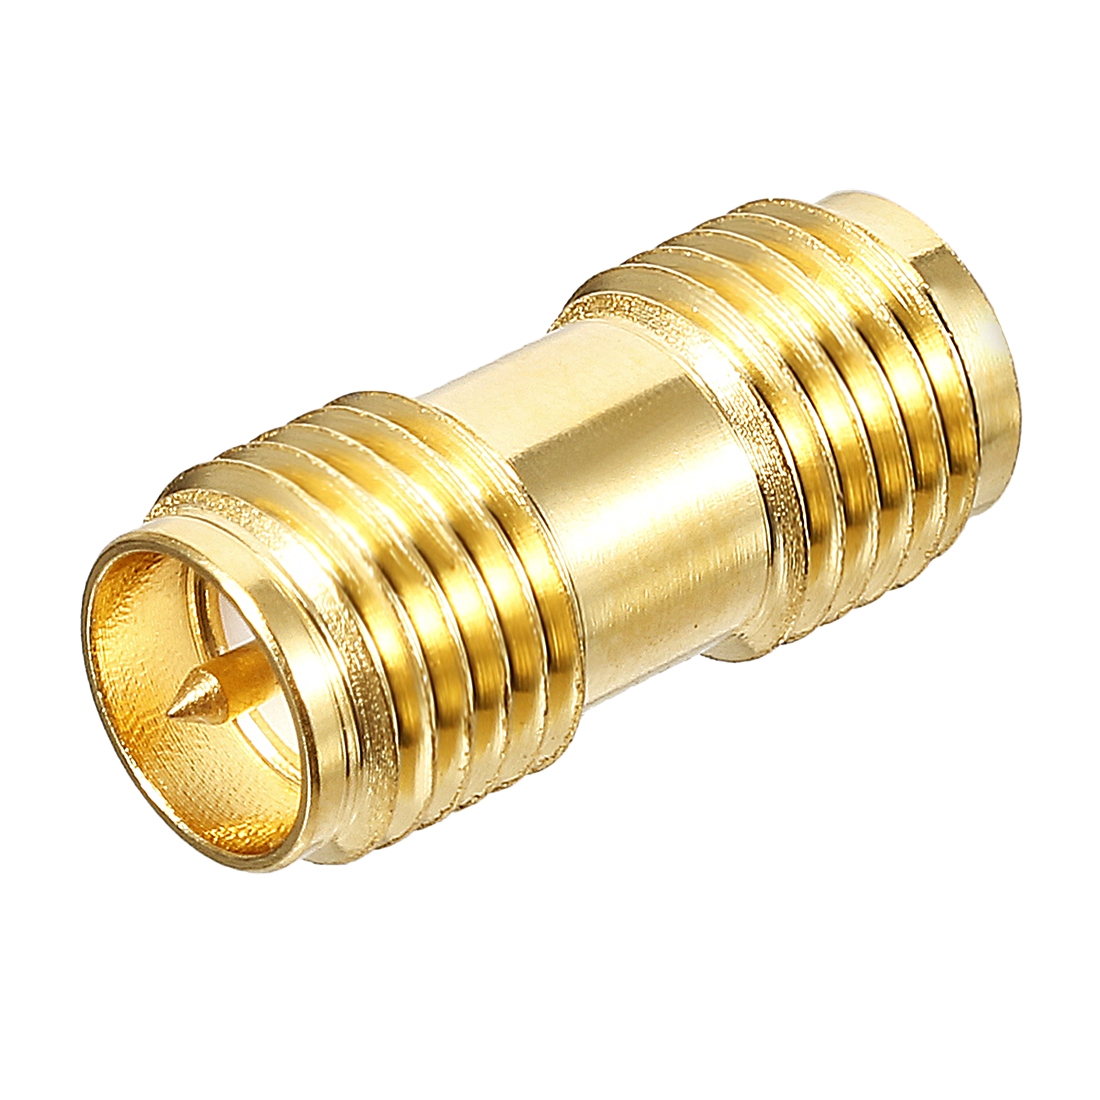 Gold Tone RP-SMA Female to RP-SMA Female Jack RF Coaxial Adapter Connector